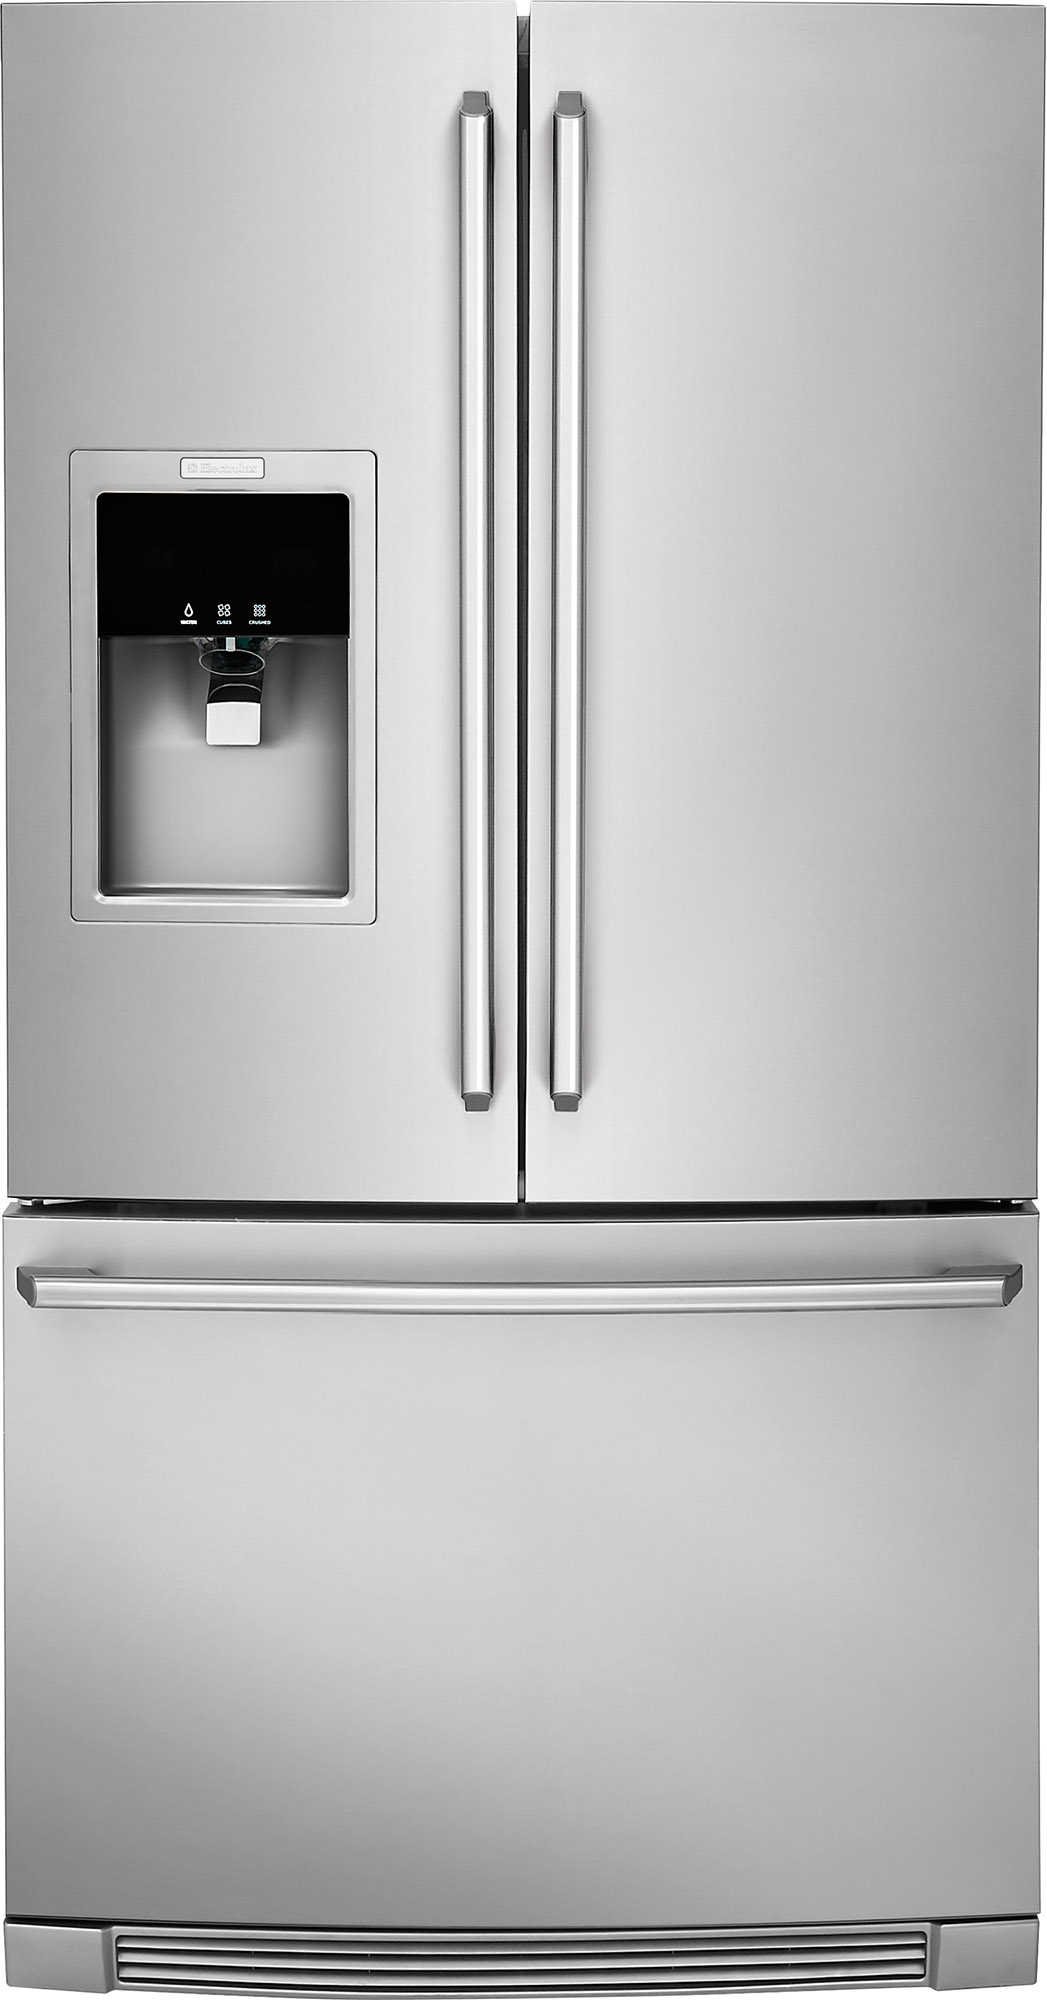 Electrolux 215 Cu Ft Counter Depth French Door Refrigerator Wall Oven Wiring Diagram Stainless Steel